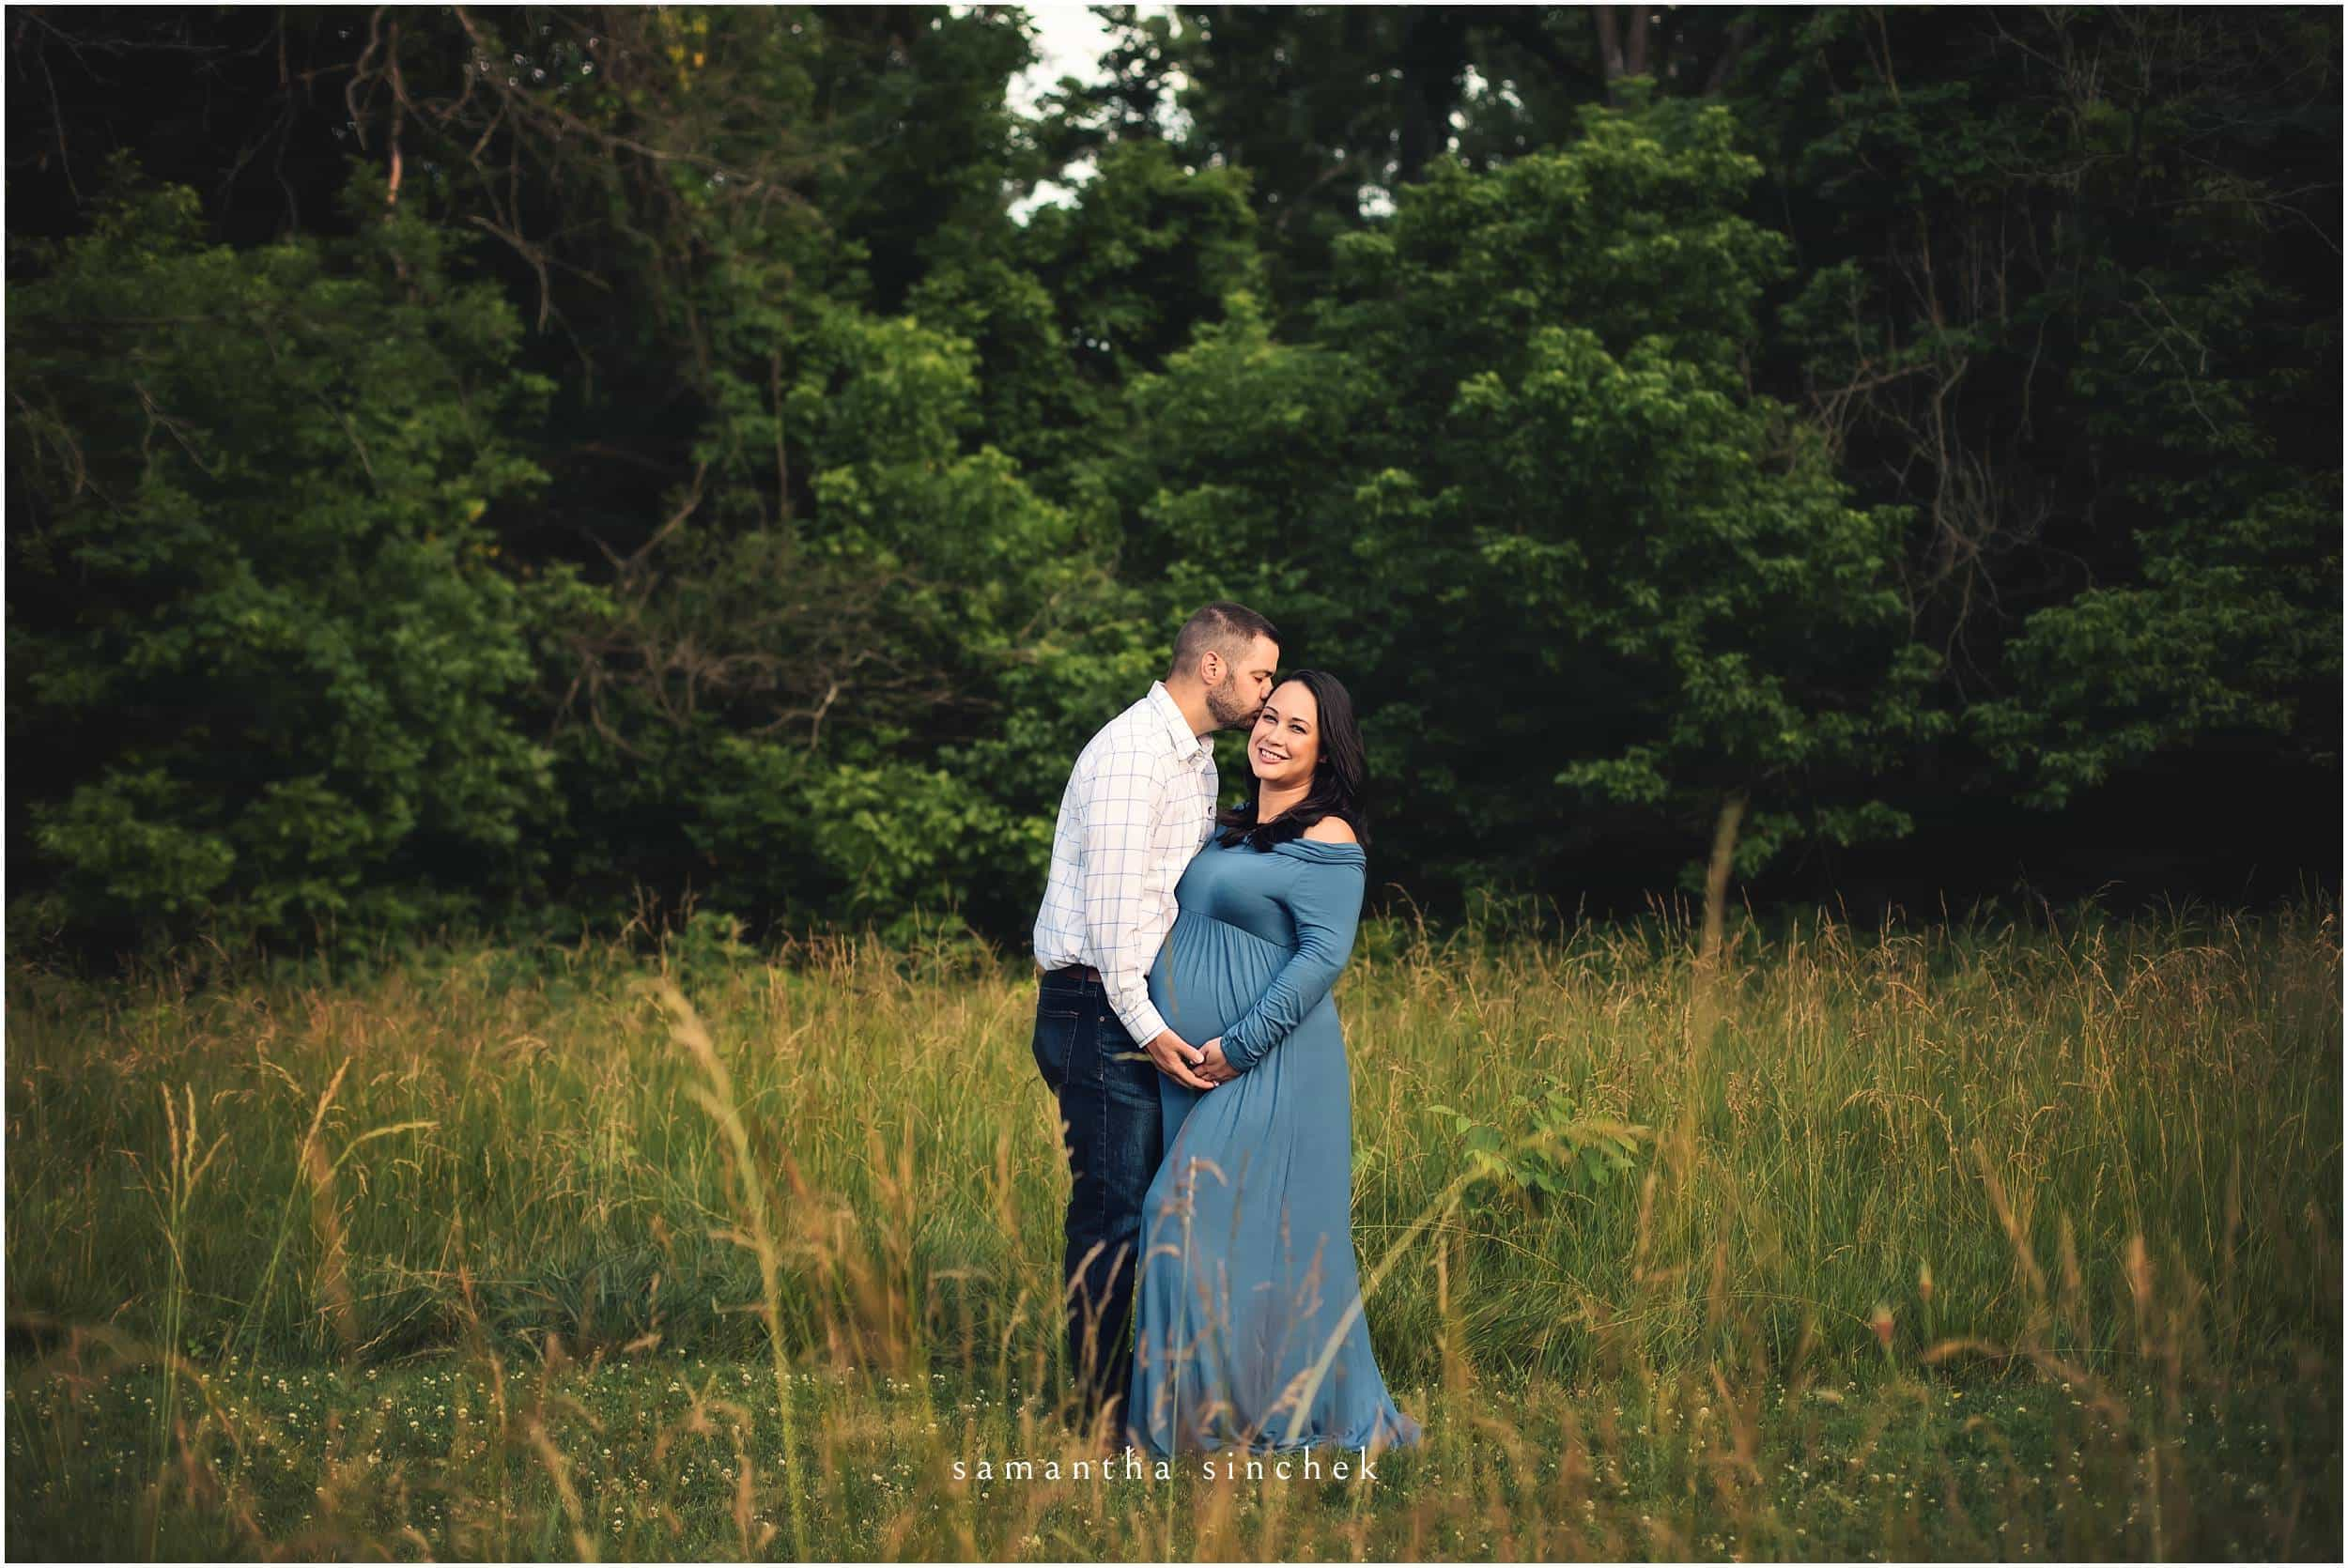 father kisses mother on the head at sharon woods in cincinnati ohio with samantha sinchek photography